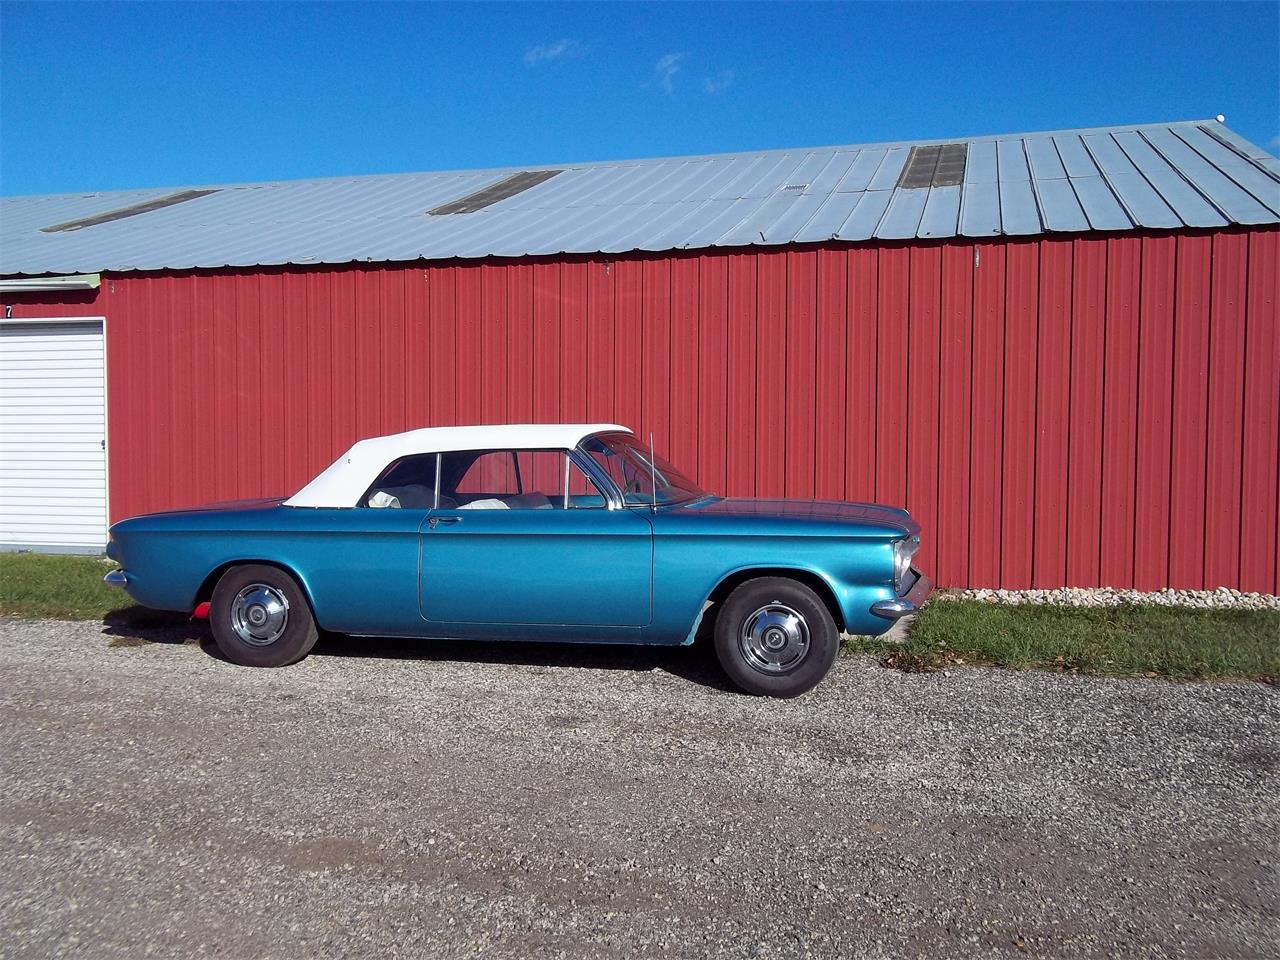 Large Picture of Classic '63 Chevrolet Corvair Monza located in Madison Wisconsin Offered by a Private Seller - L2P4